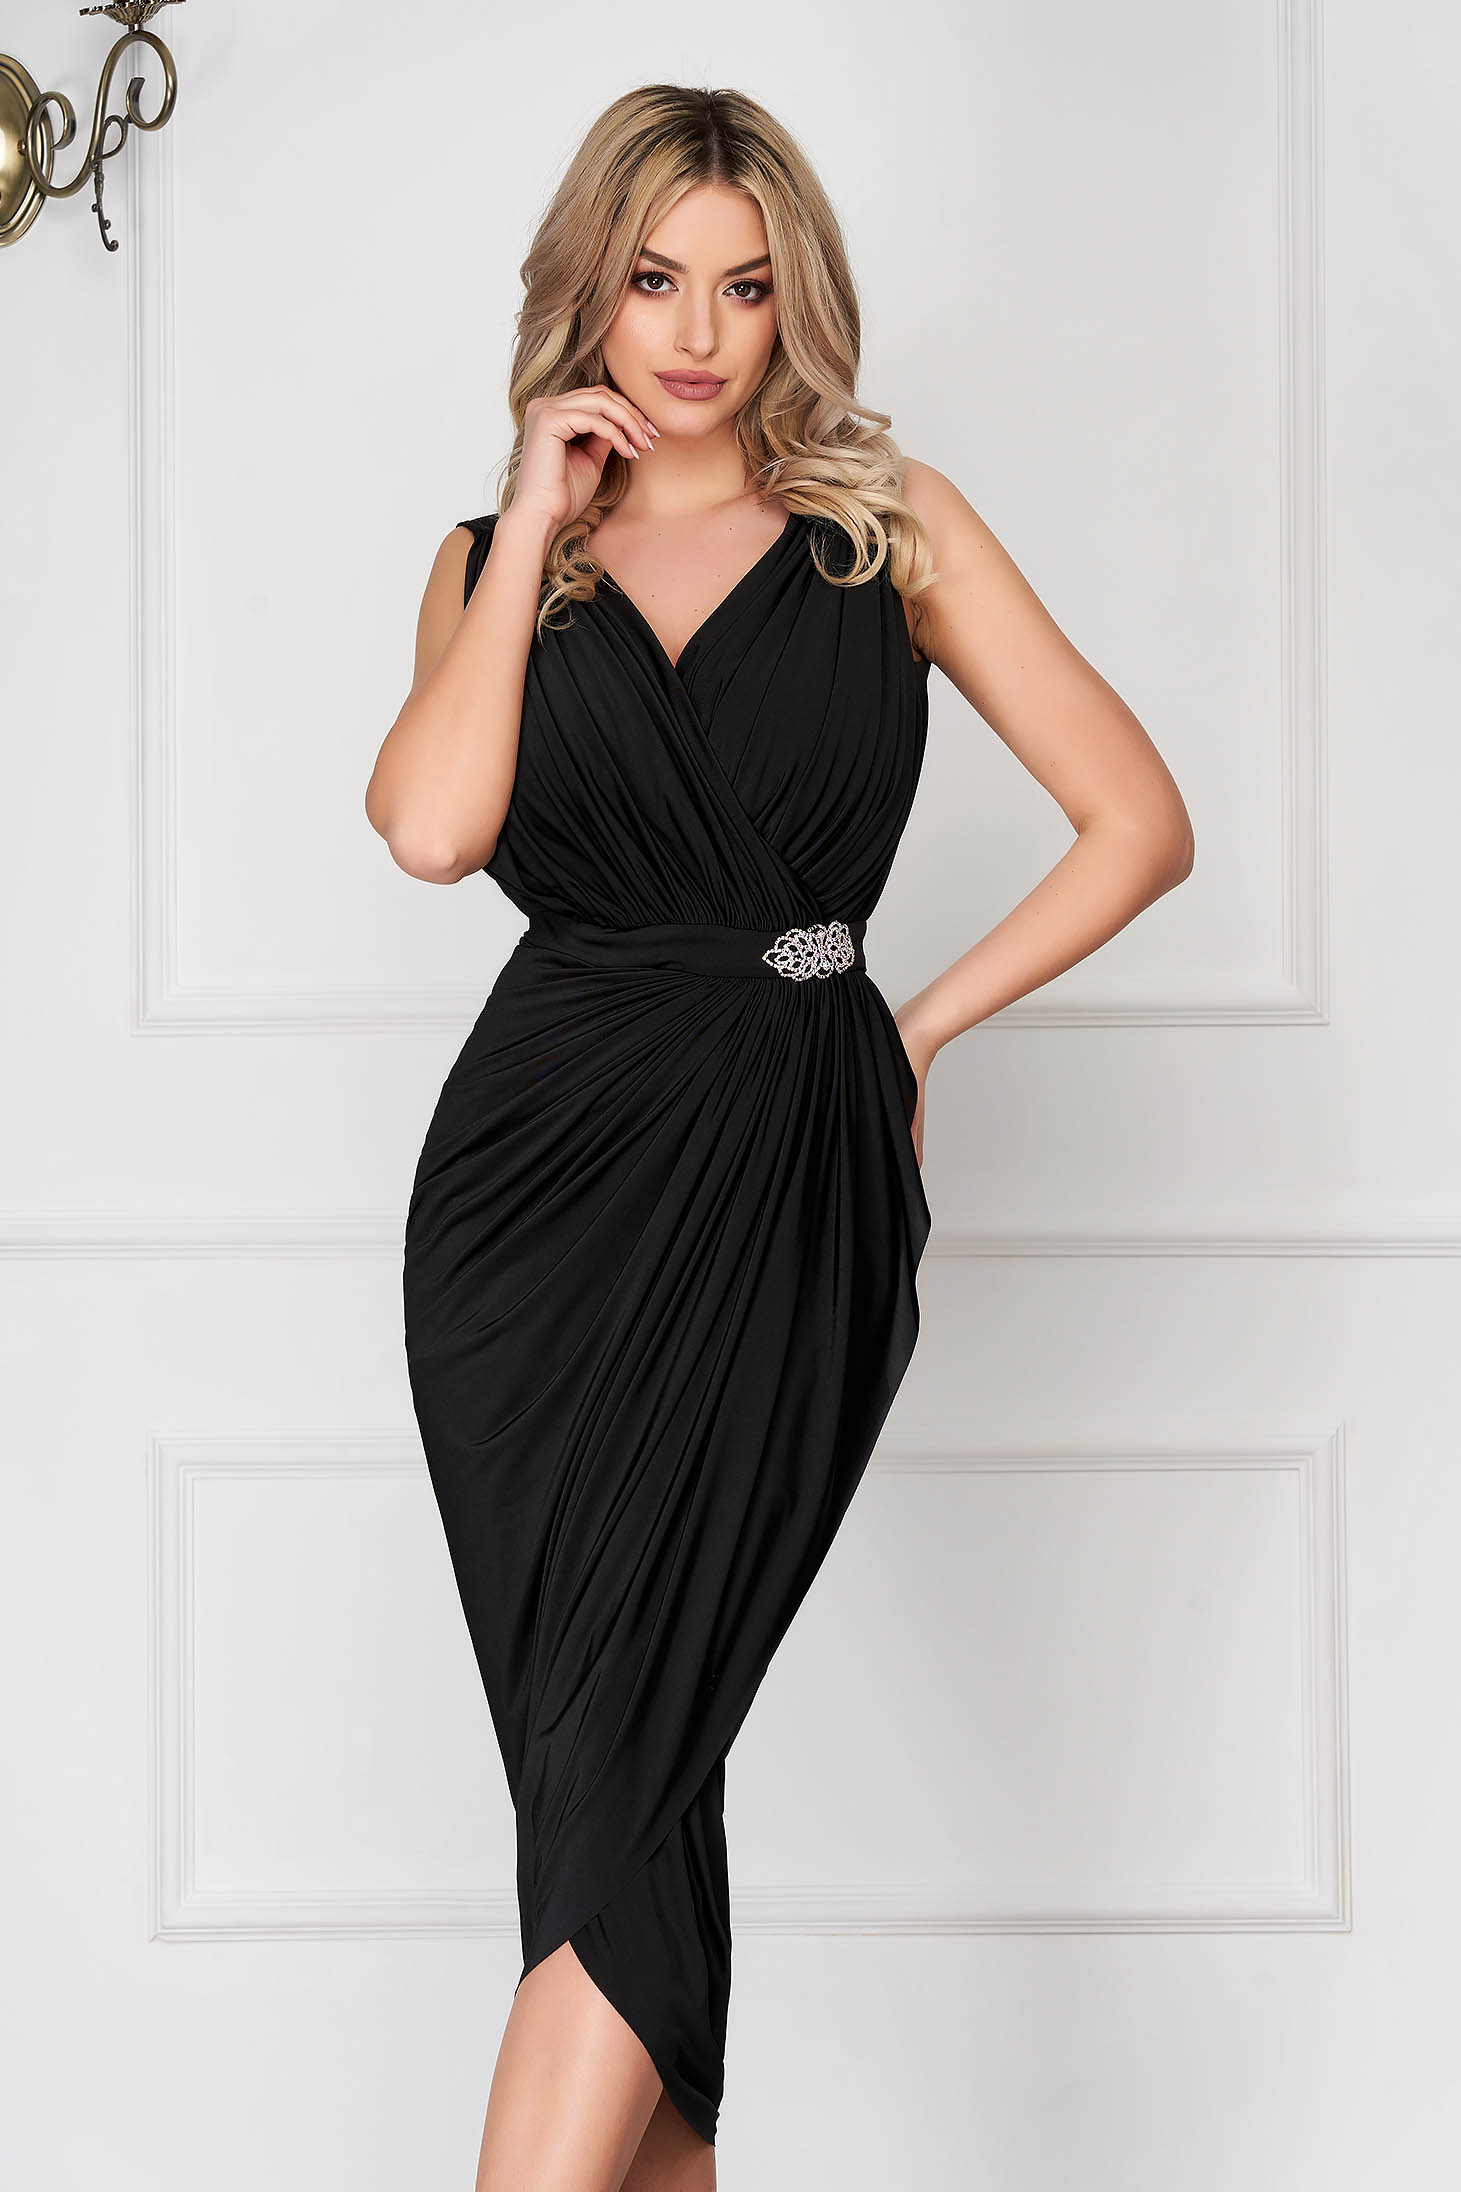 Black occasional wrap around dress with embellished accessories with tented cut thin fabric